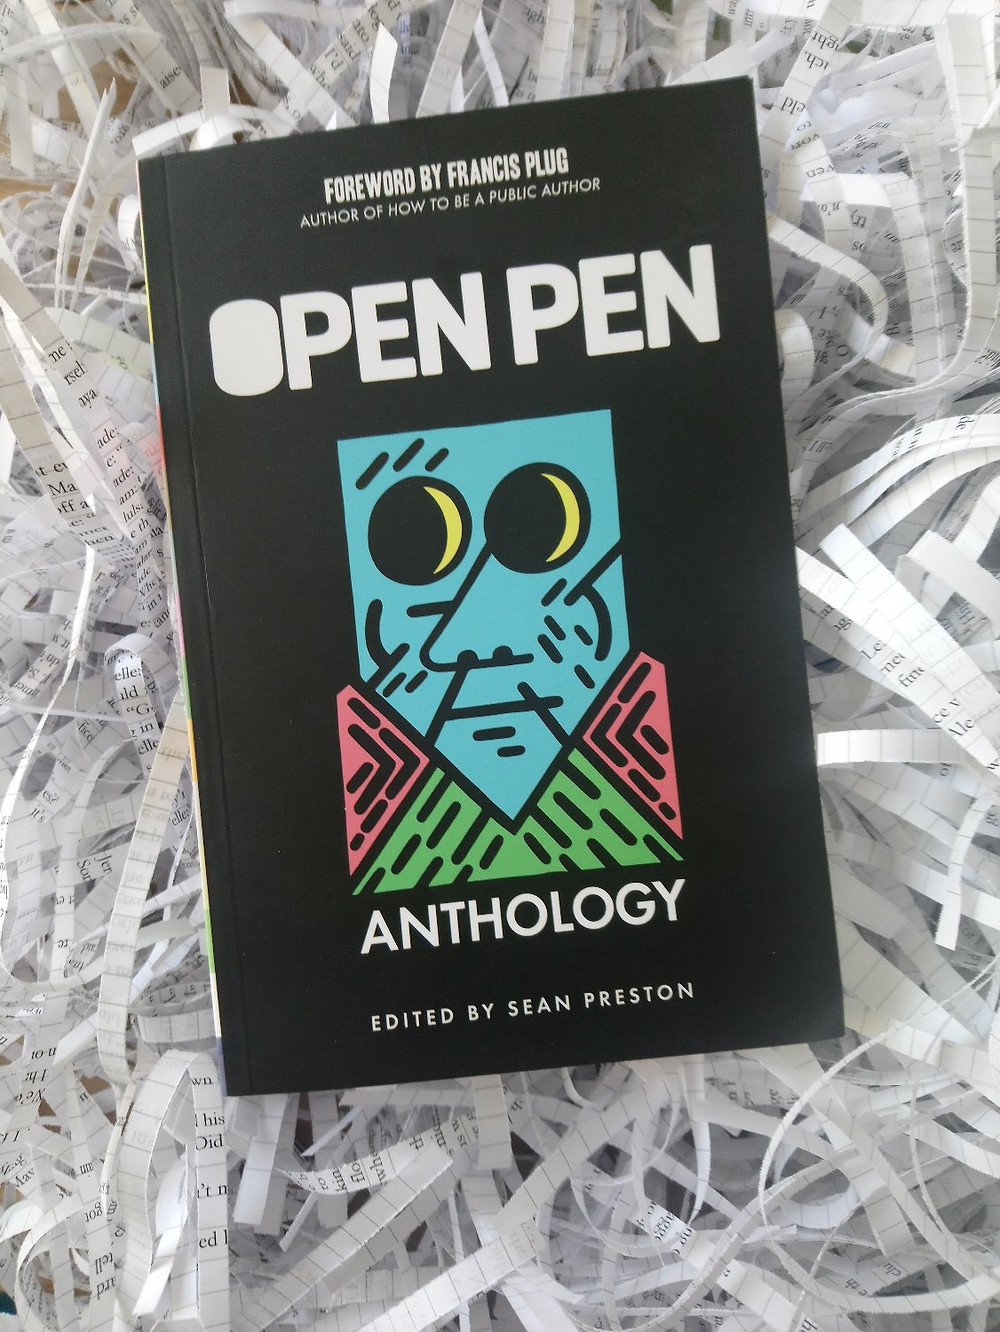 'Open Pen Anthology' edited by Sean Preston, a black cover showing multi-coloured shapes making up a face, on a bed of shredded paper